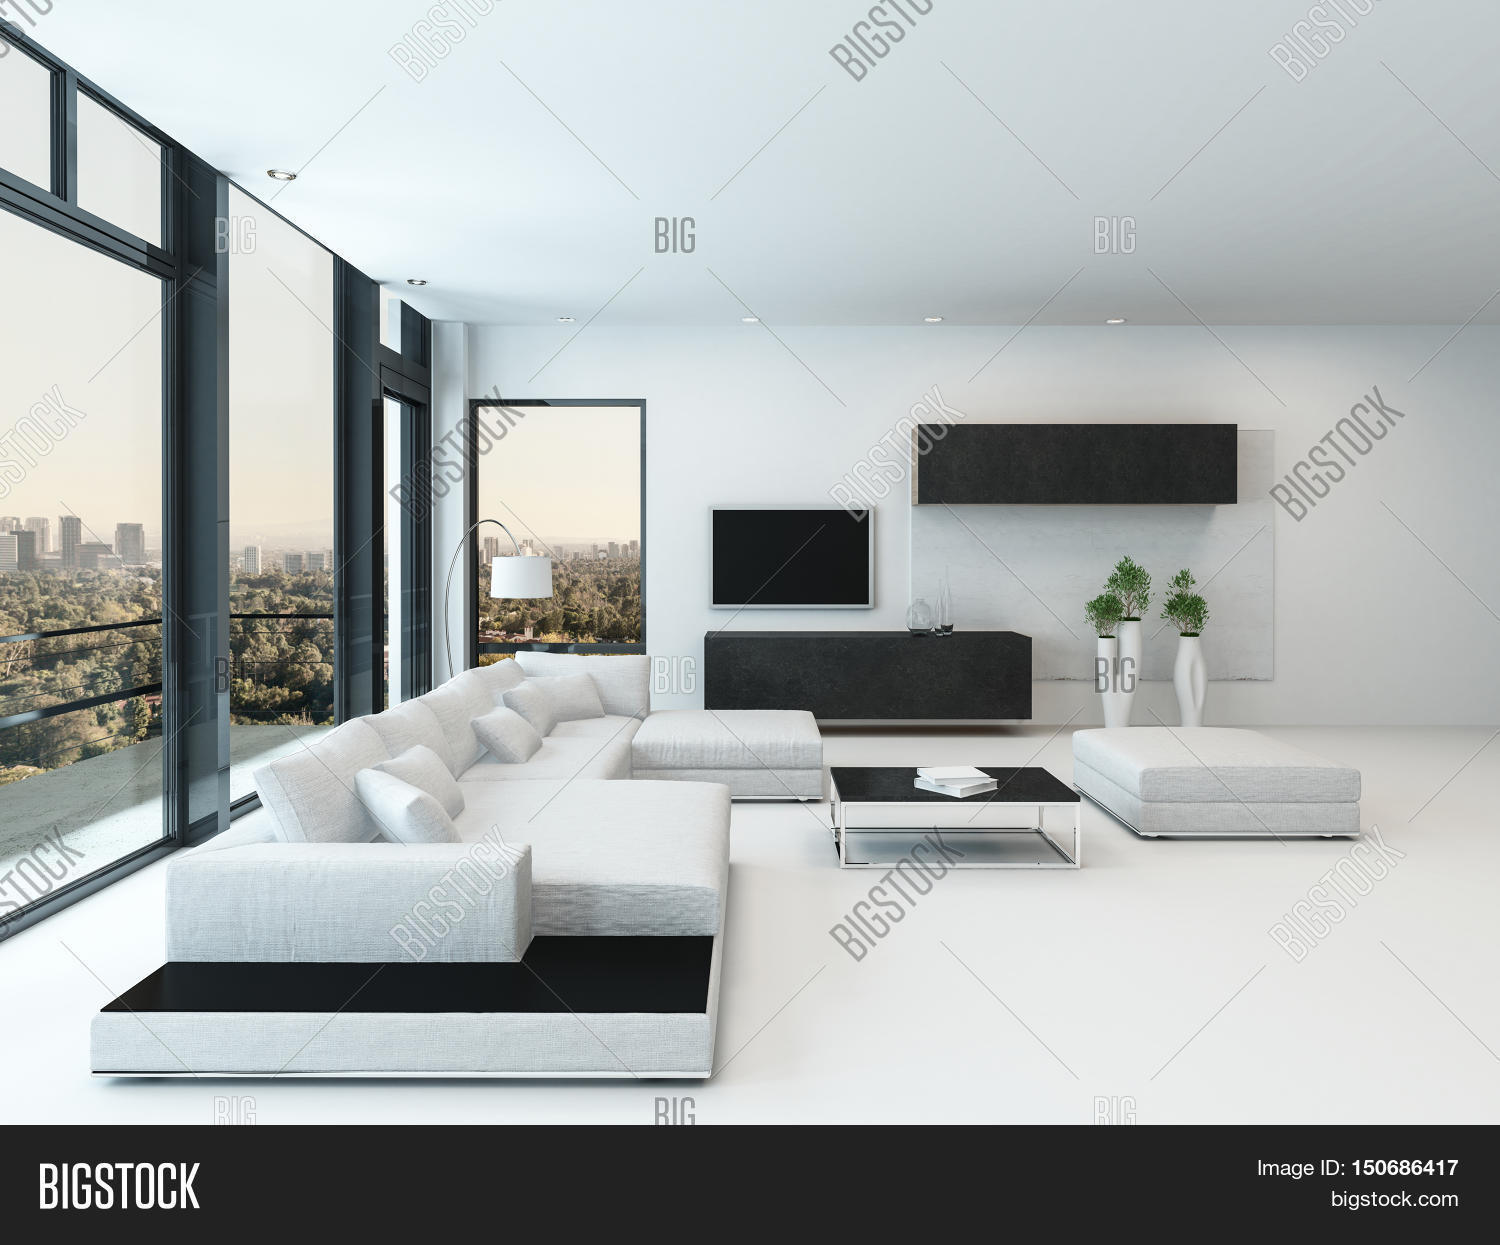 Luxury white living rooms - Contemporary Luxury Living Room Interior With Black And White Decor A Modular Lounge Suite And